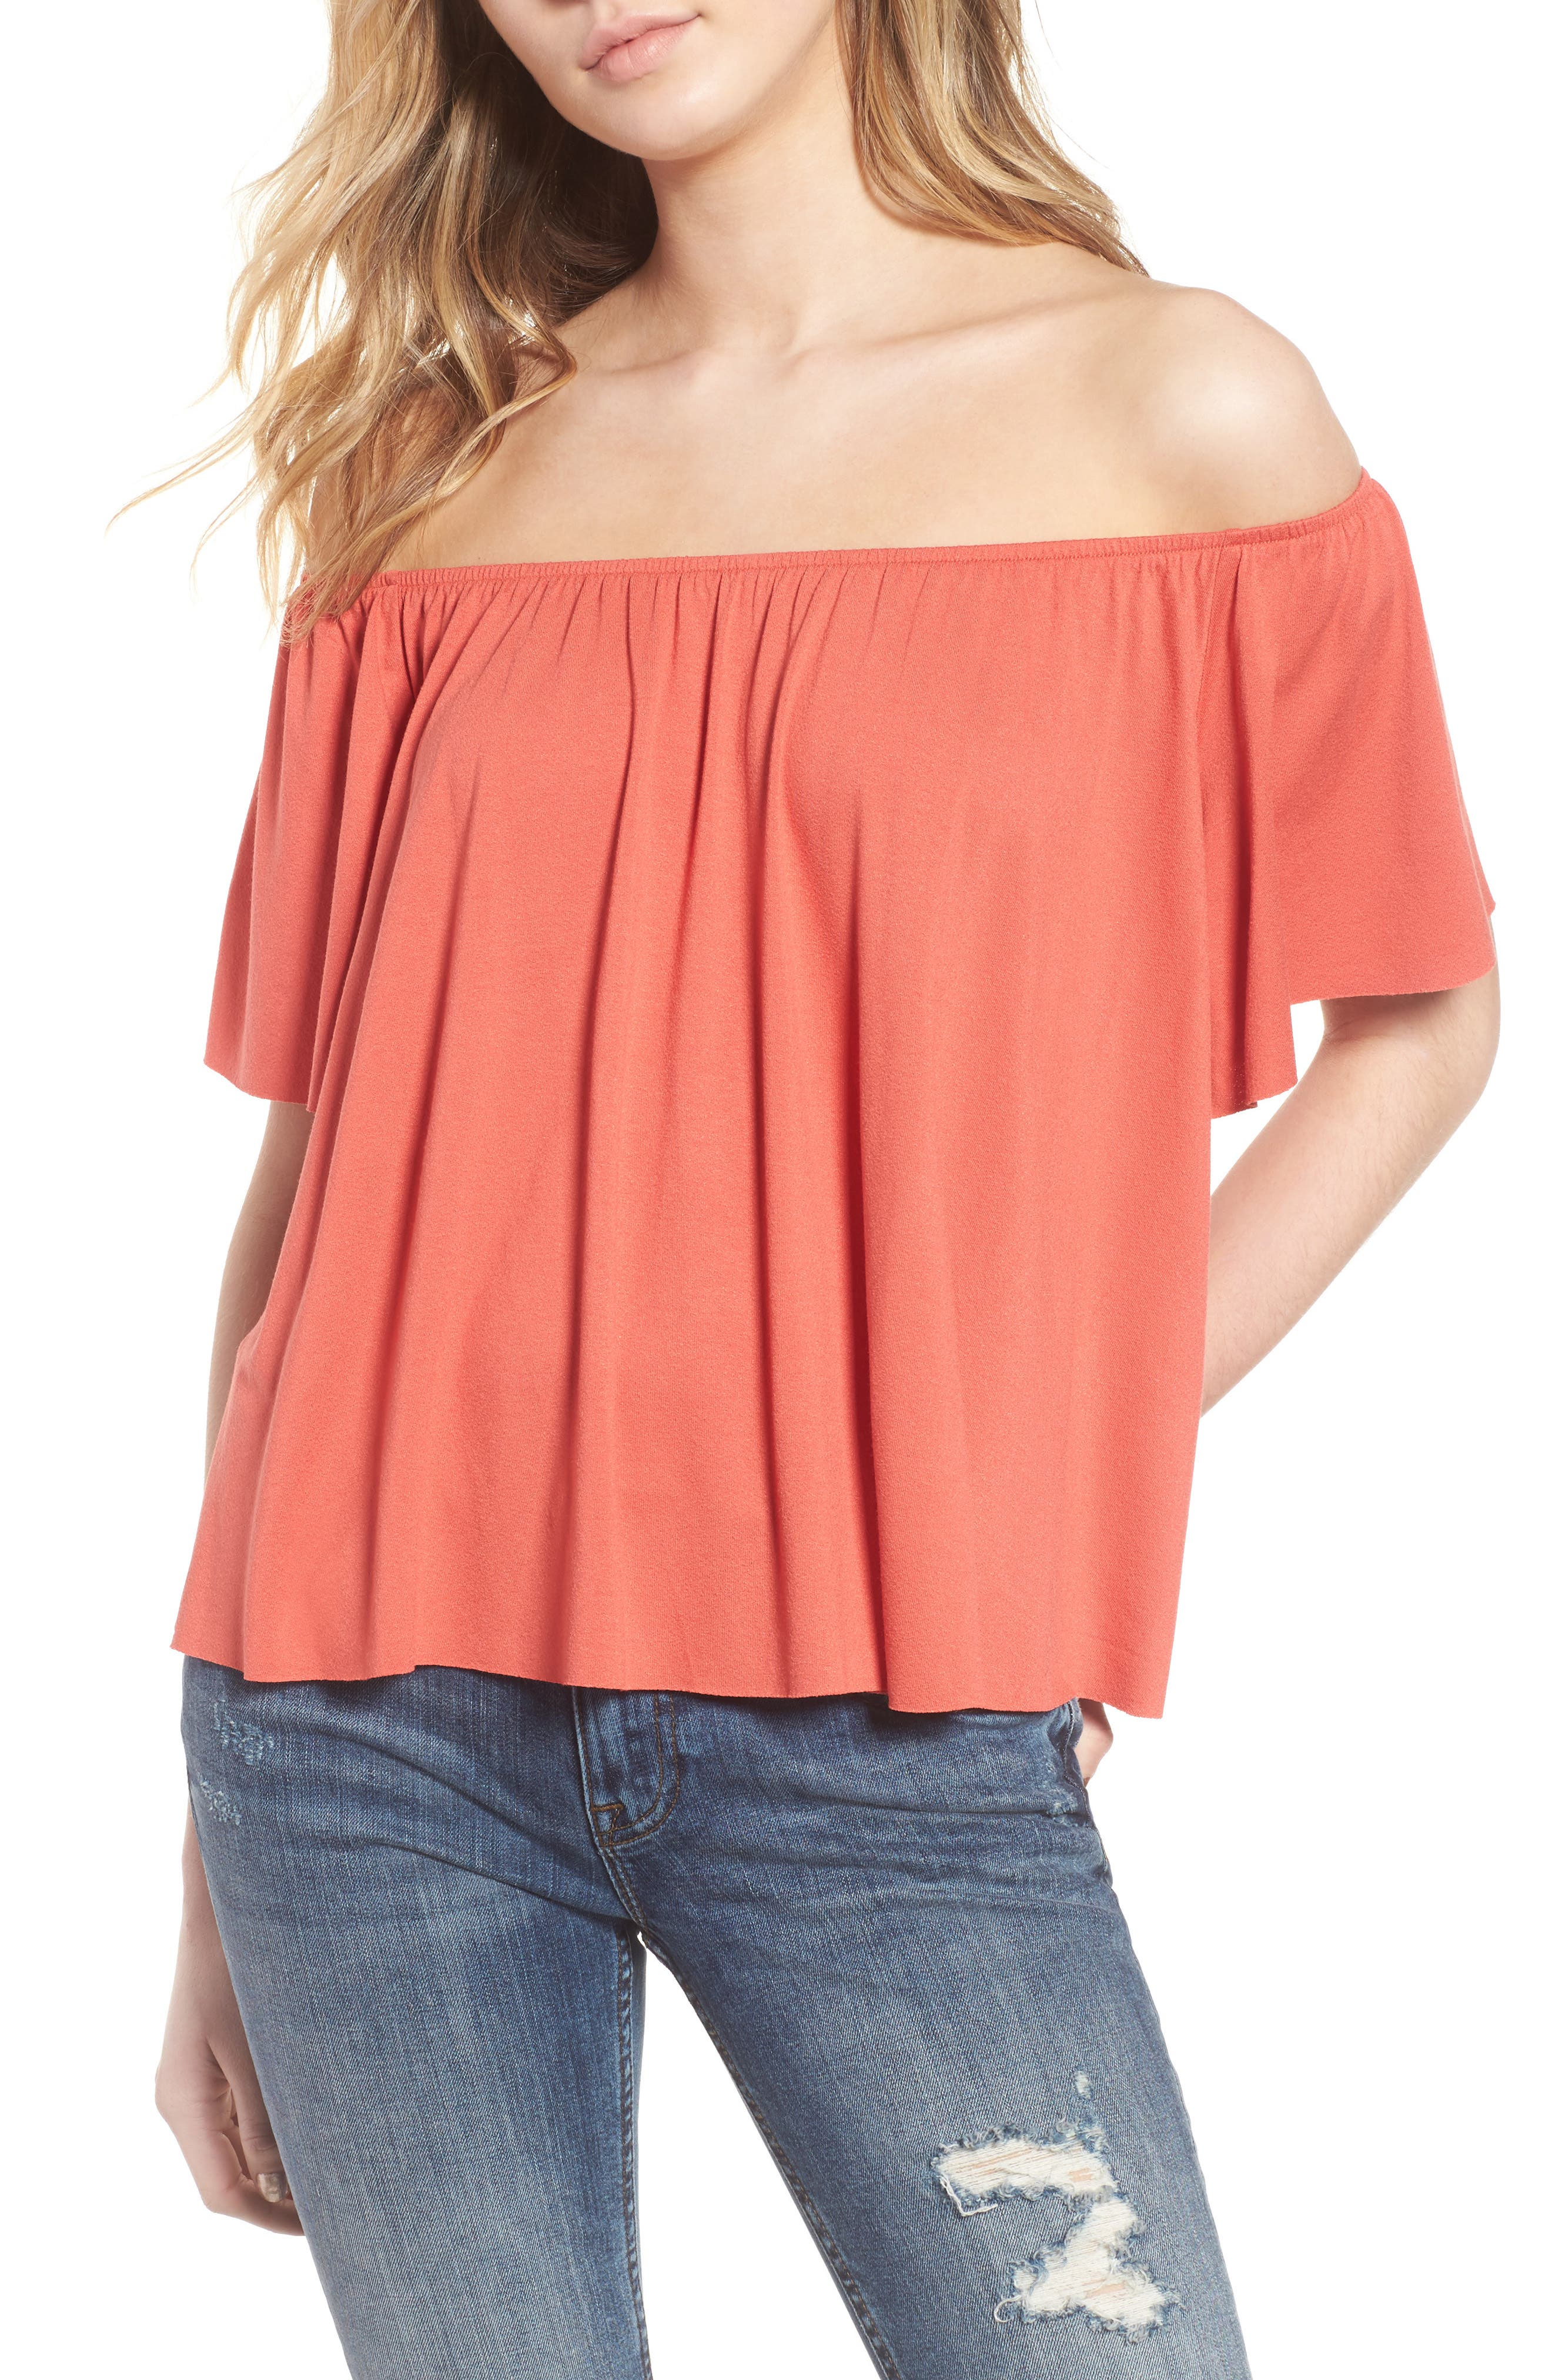 Off the Shoulder Top,                             Main thumbnail 1, color,                             Rust Sienna